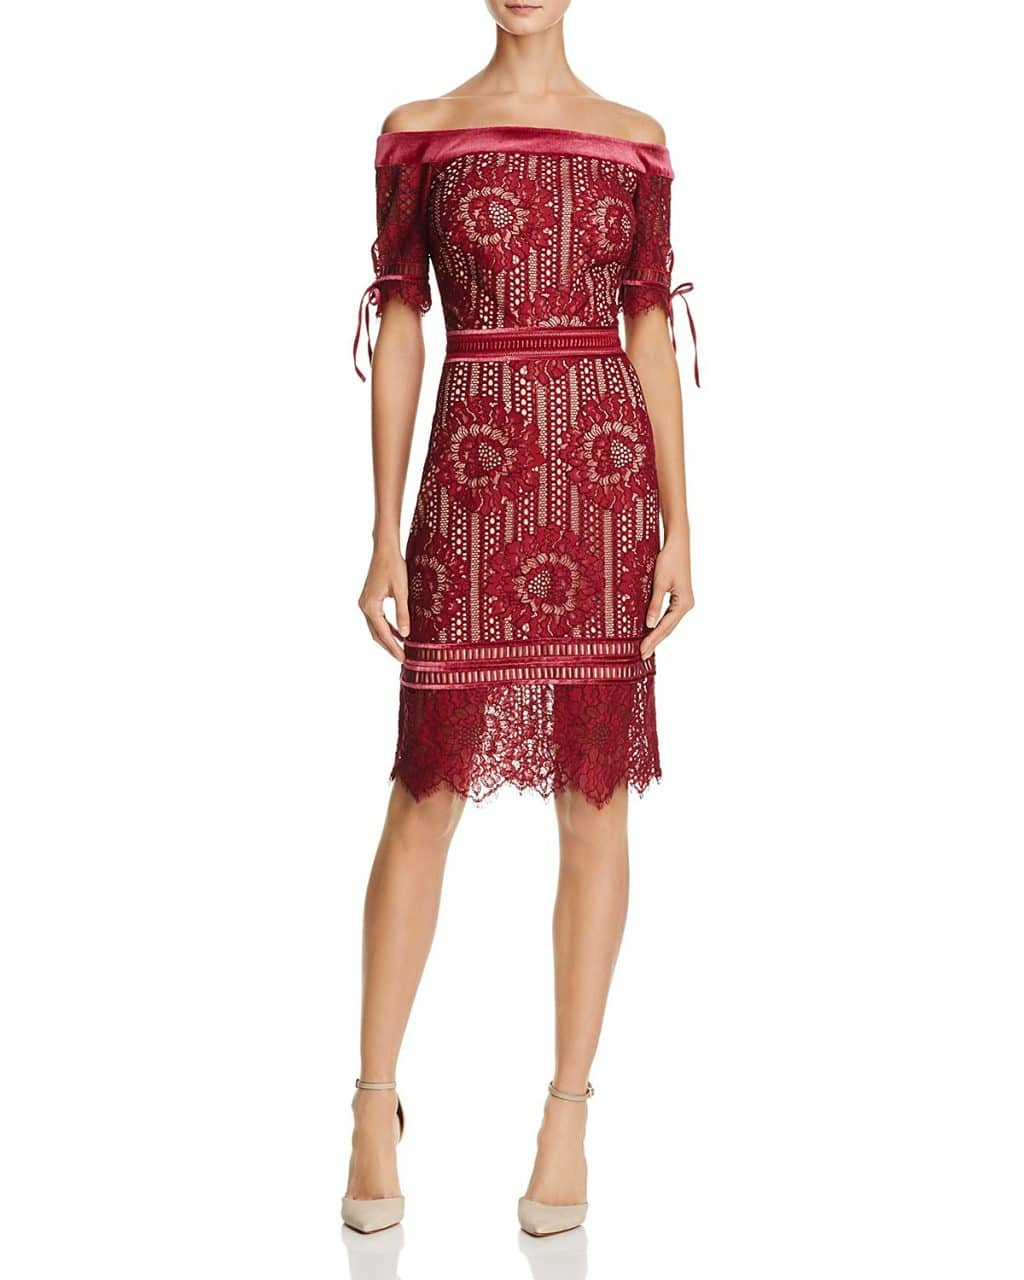 TADASHI SHOJI Off-the-Shoulder Lace Wine / Nude Dress